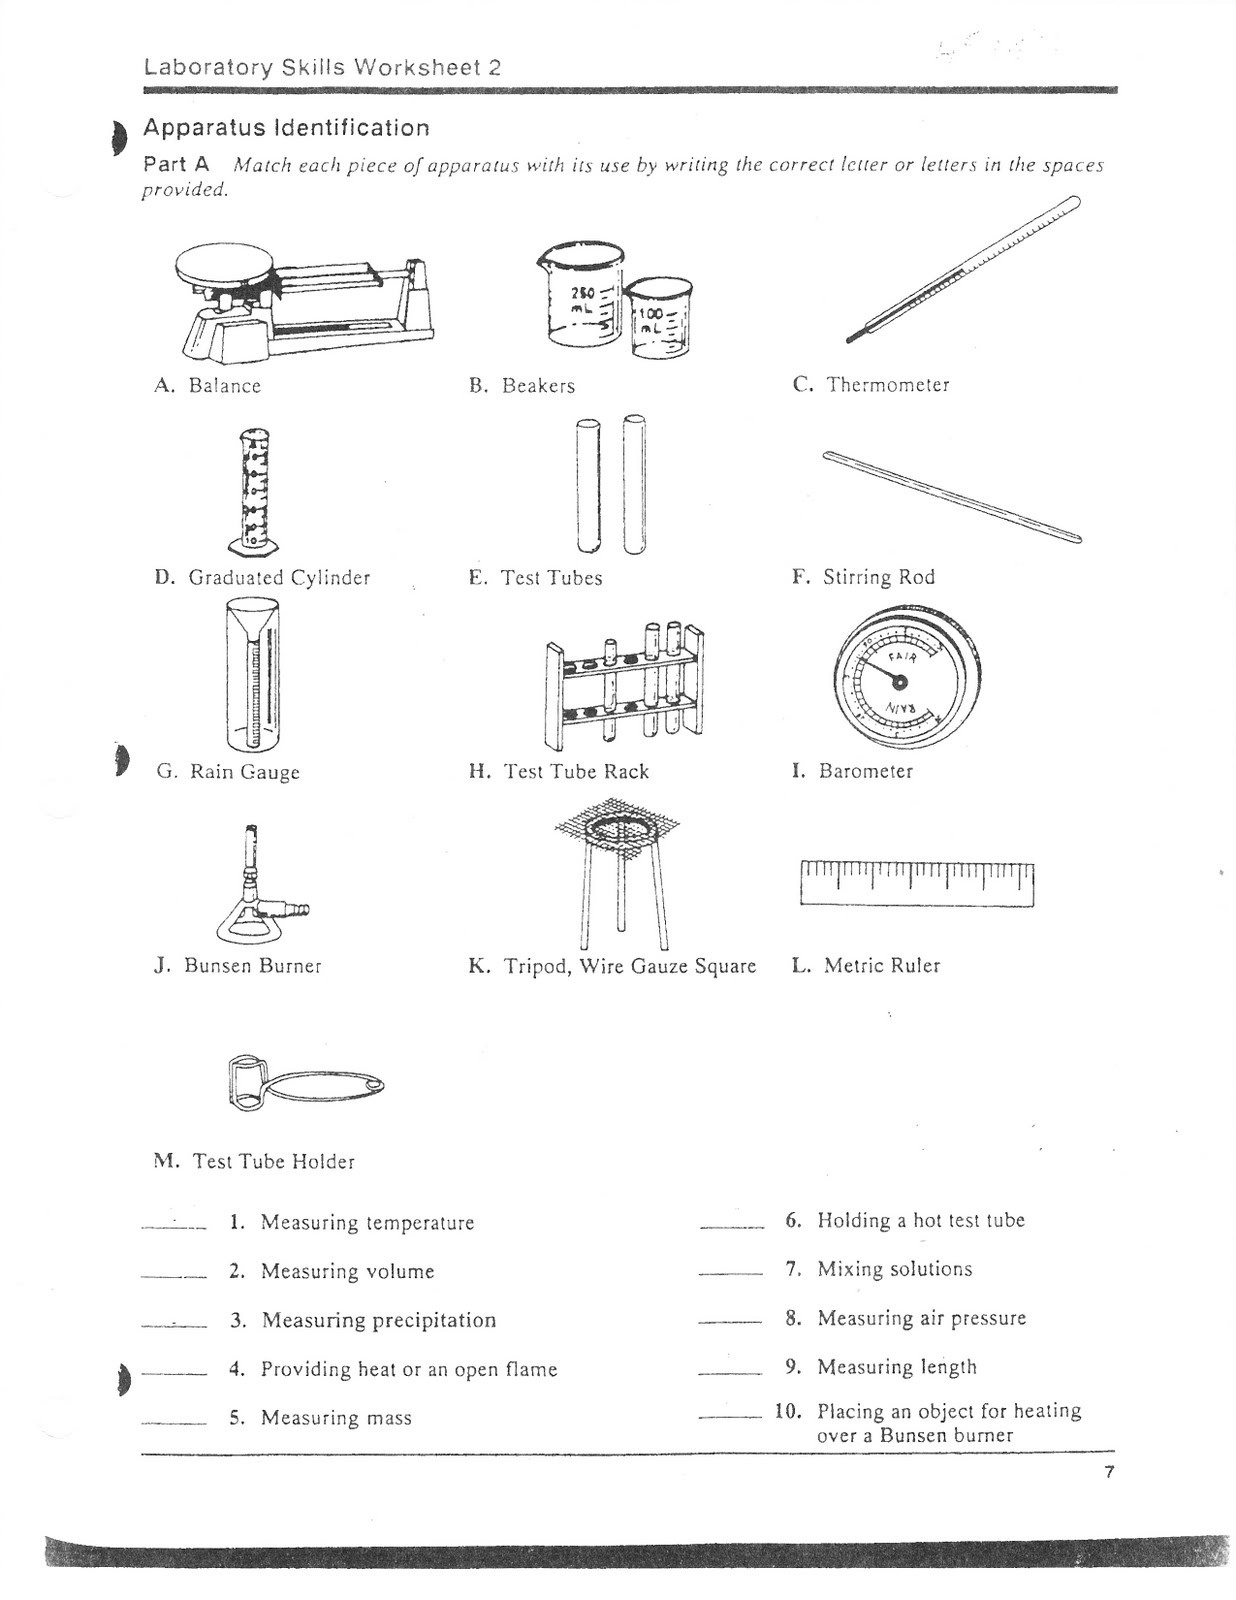 Becoming Familiar With Lab Equipment Worksheet Answer Key